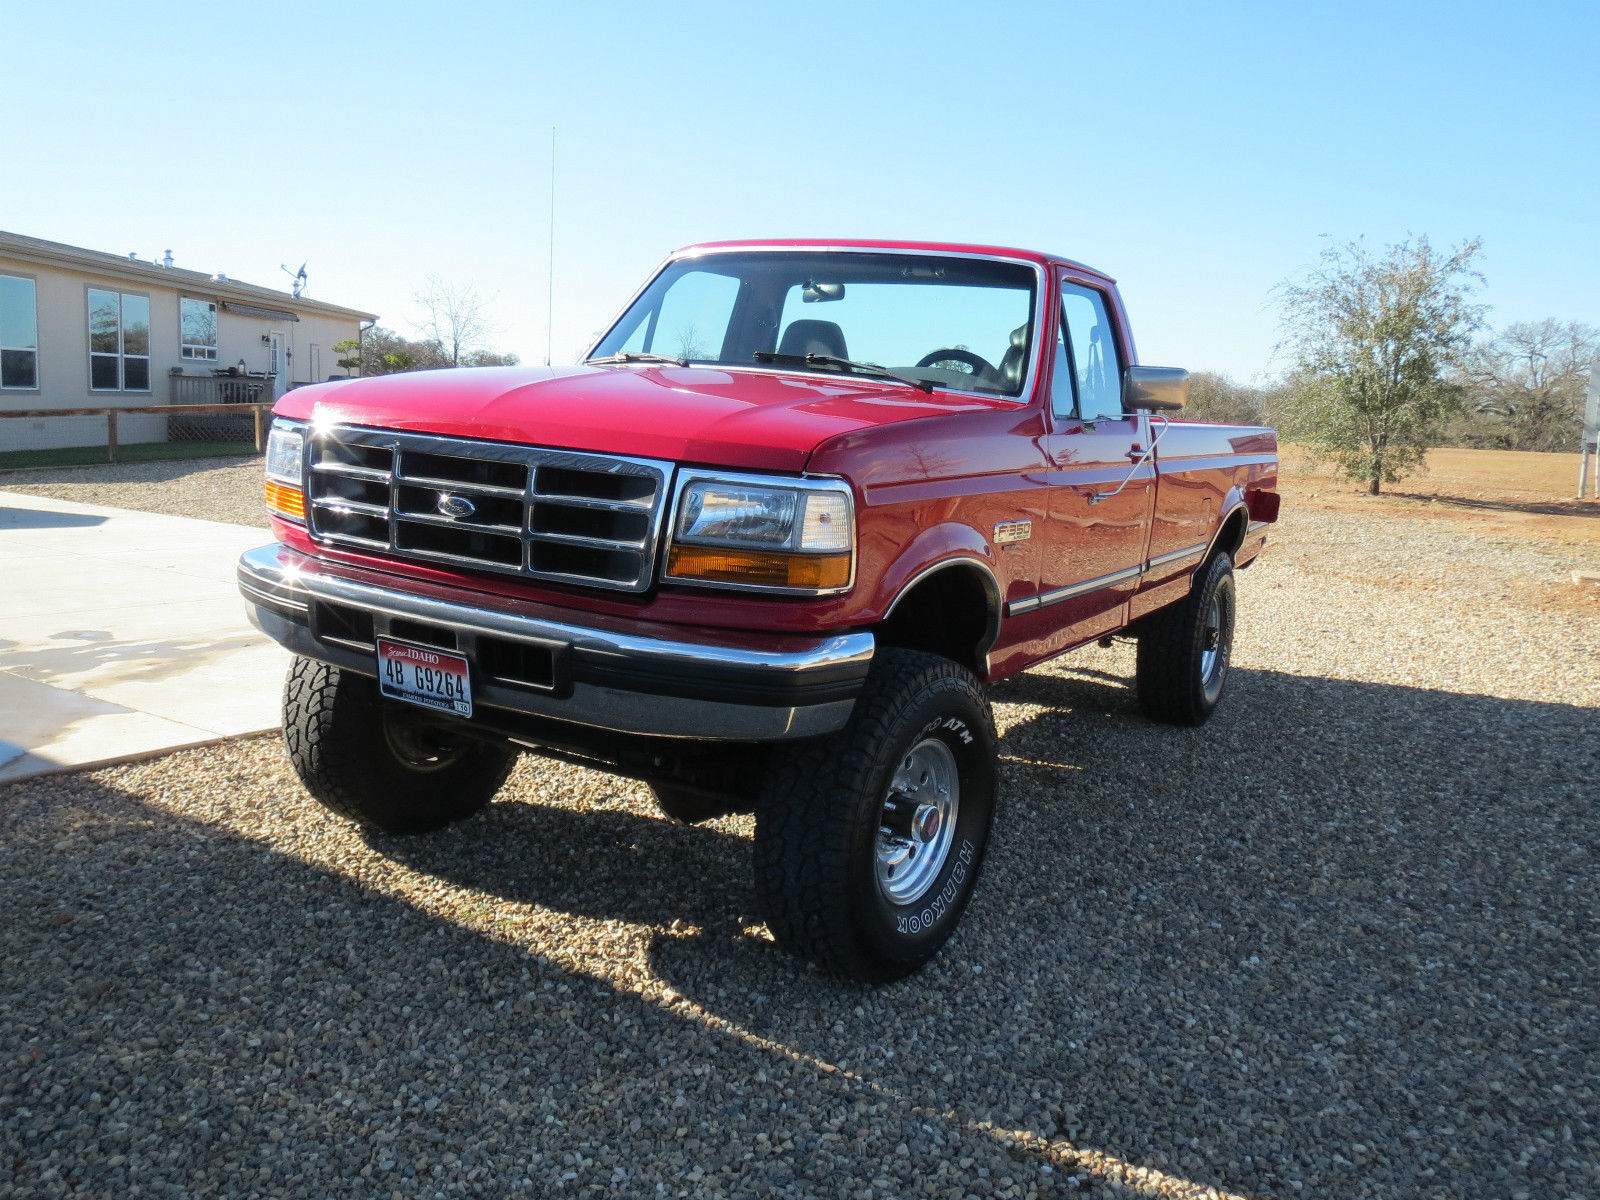 1994 ford f 350 xlt 7 3 powerstroke turbo diesel 5 speed manual classic ford f 350 1994 for sale. Black Bedroom Furniture Sets. Home Design Ideas